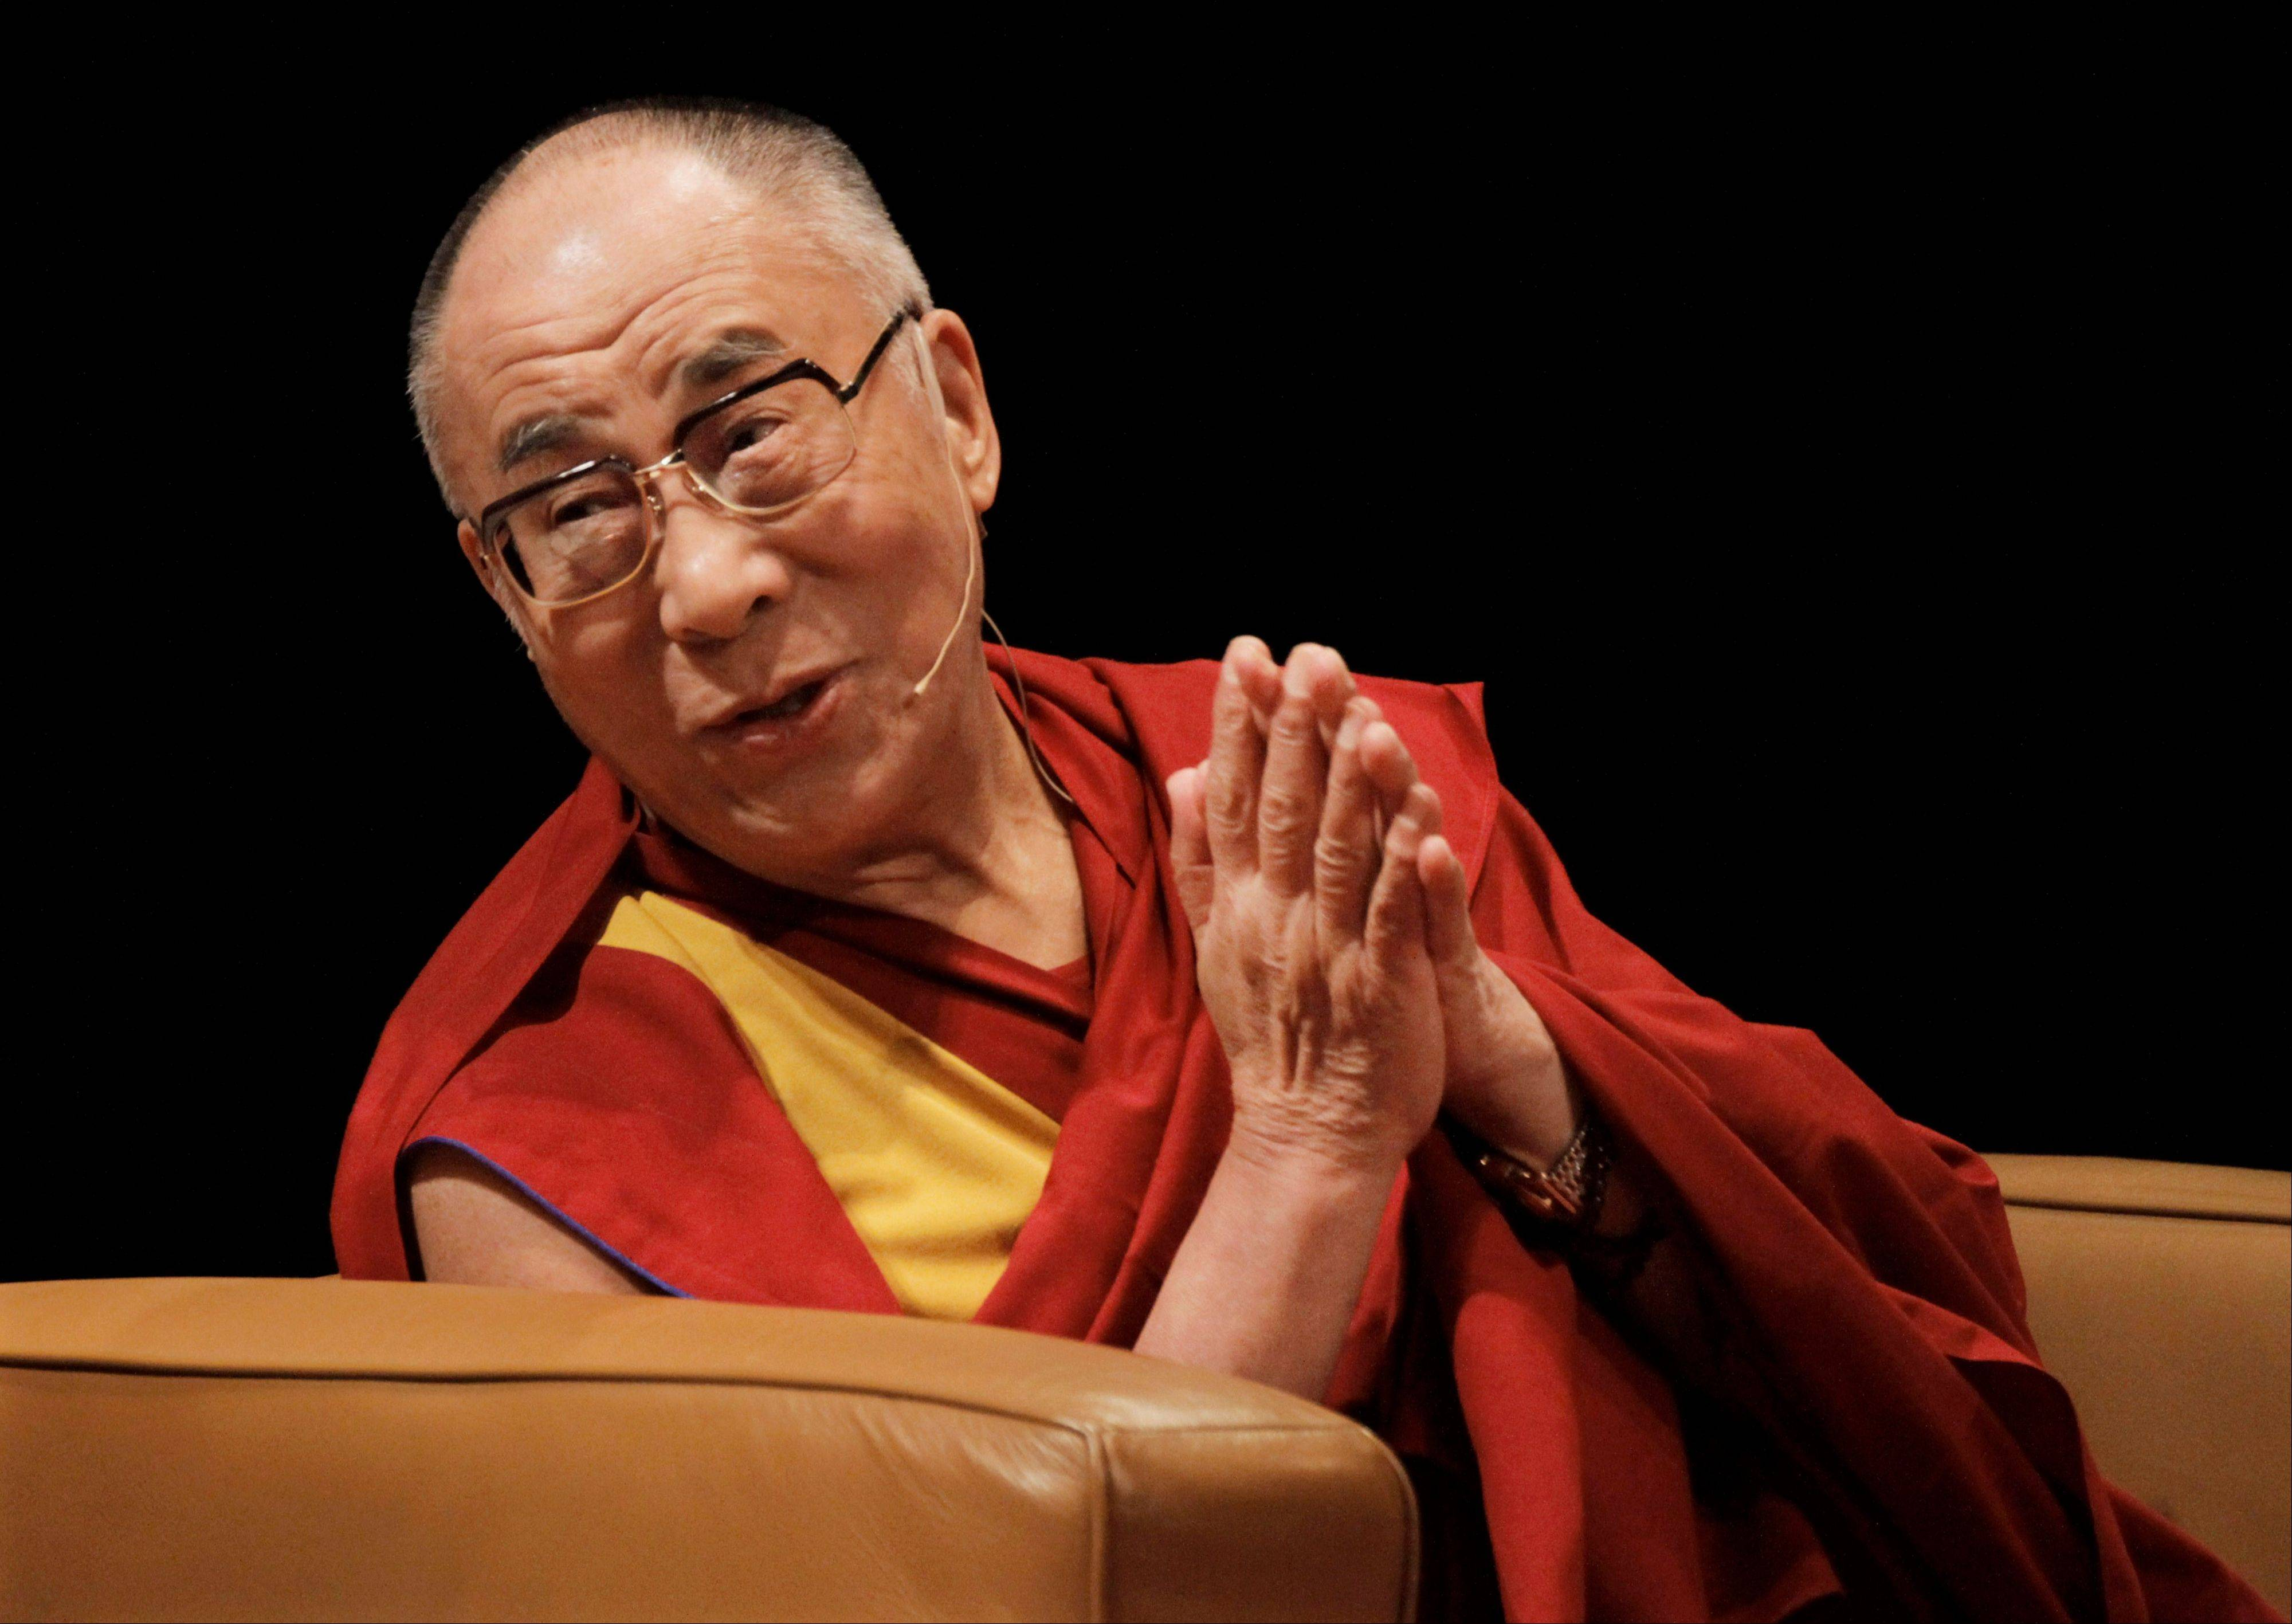 The Dalai Lama participates in a multi-faith panel discussion with Jewish, Islamic and Christian leaders Monday in Chicago. The Dalai Lama praised Illinois on Sunday for recently abolishing the death penalty.